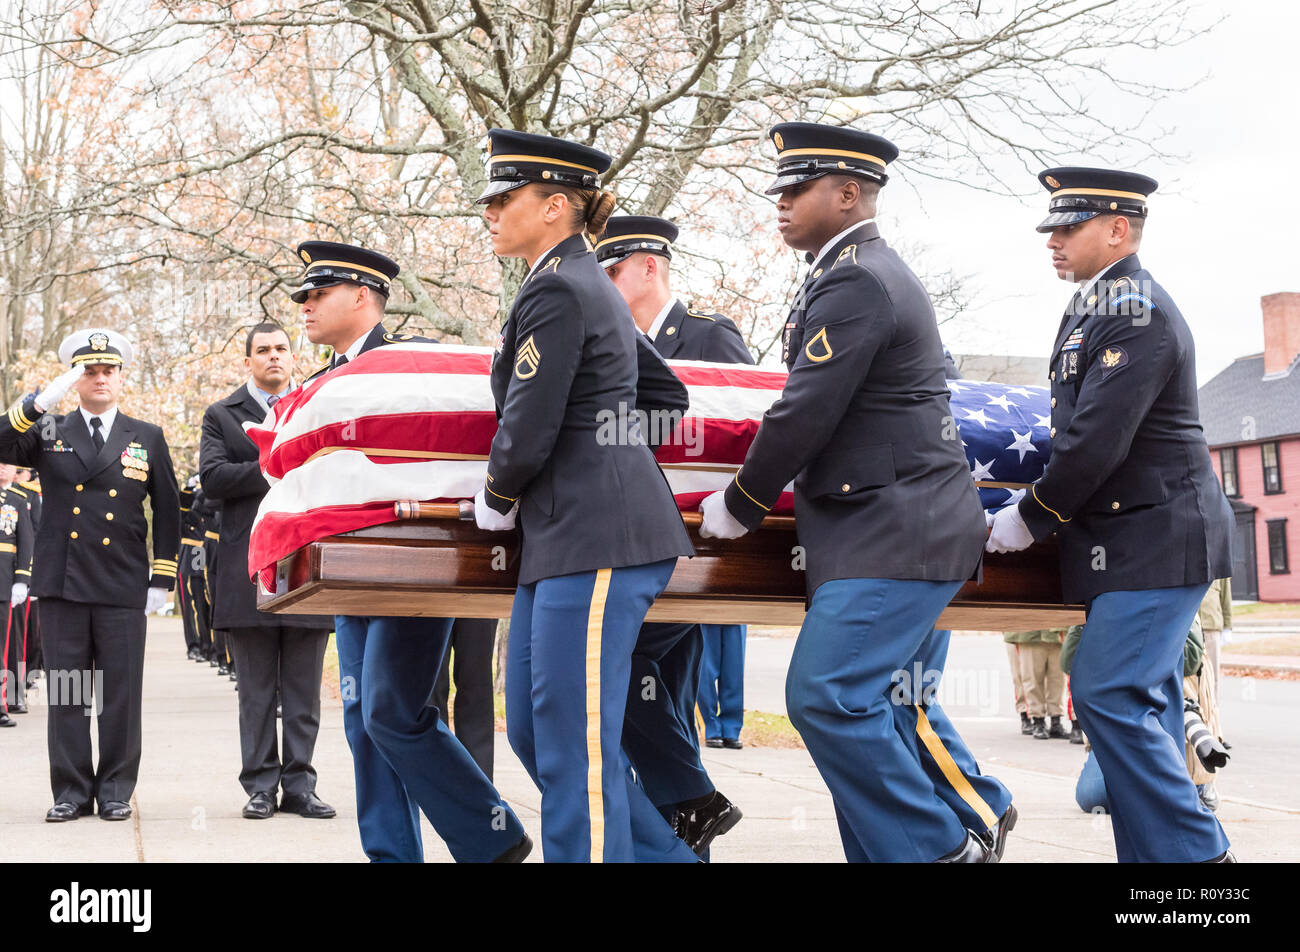 Military Funeral Honors Team of the Massachusetts Army National Guard carries the flag draped coffin of Medal of Honor recipient Capt. Thomas Hudner. - Stock Image